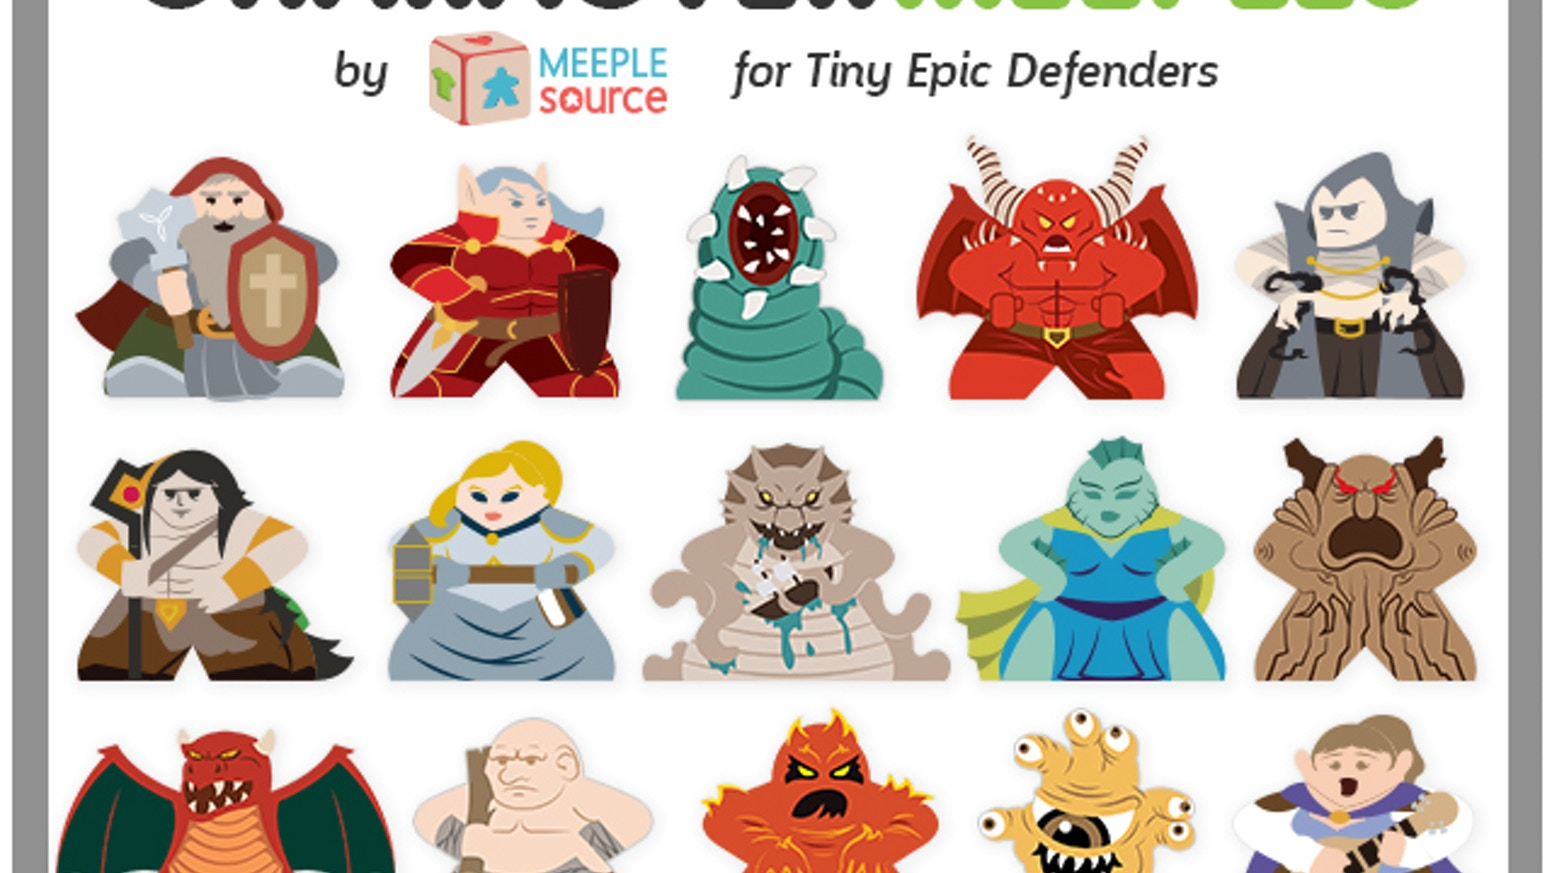 Meeple Source is back, with a Character Meeple set for Tiny Epic Defenders by Gamelyn Games - 15 Heroes and 8 Epic Foes!